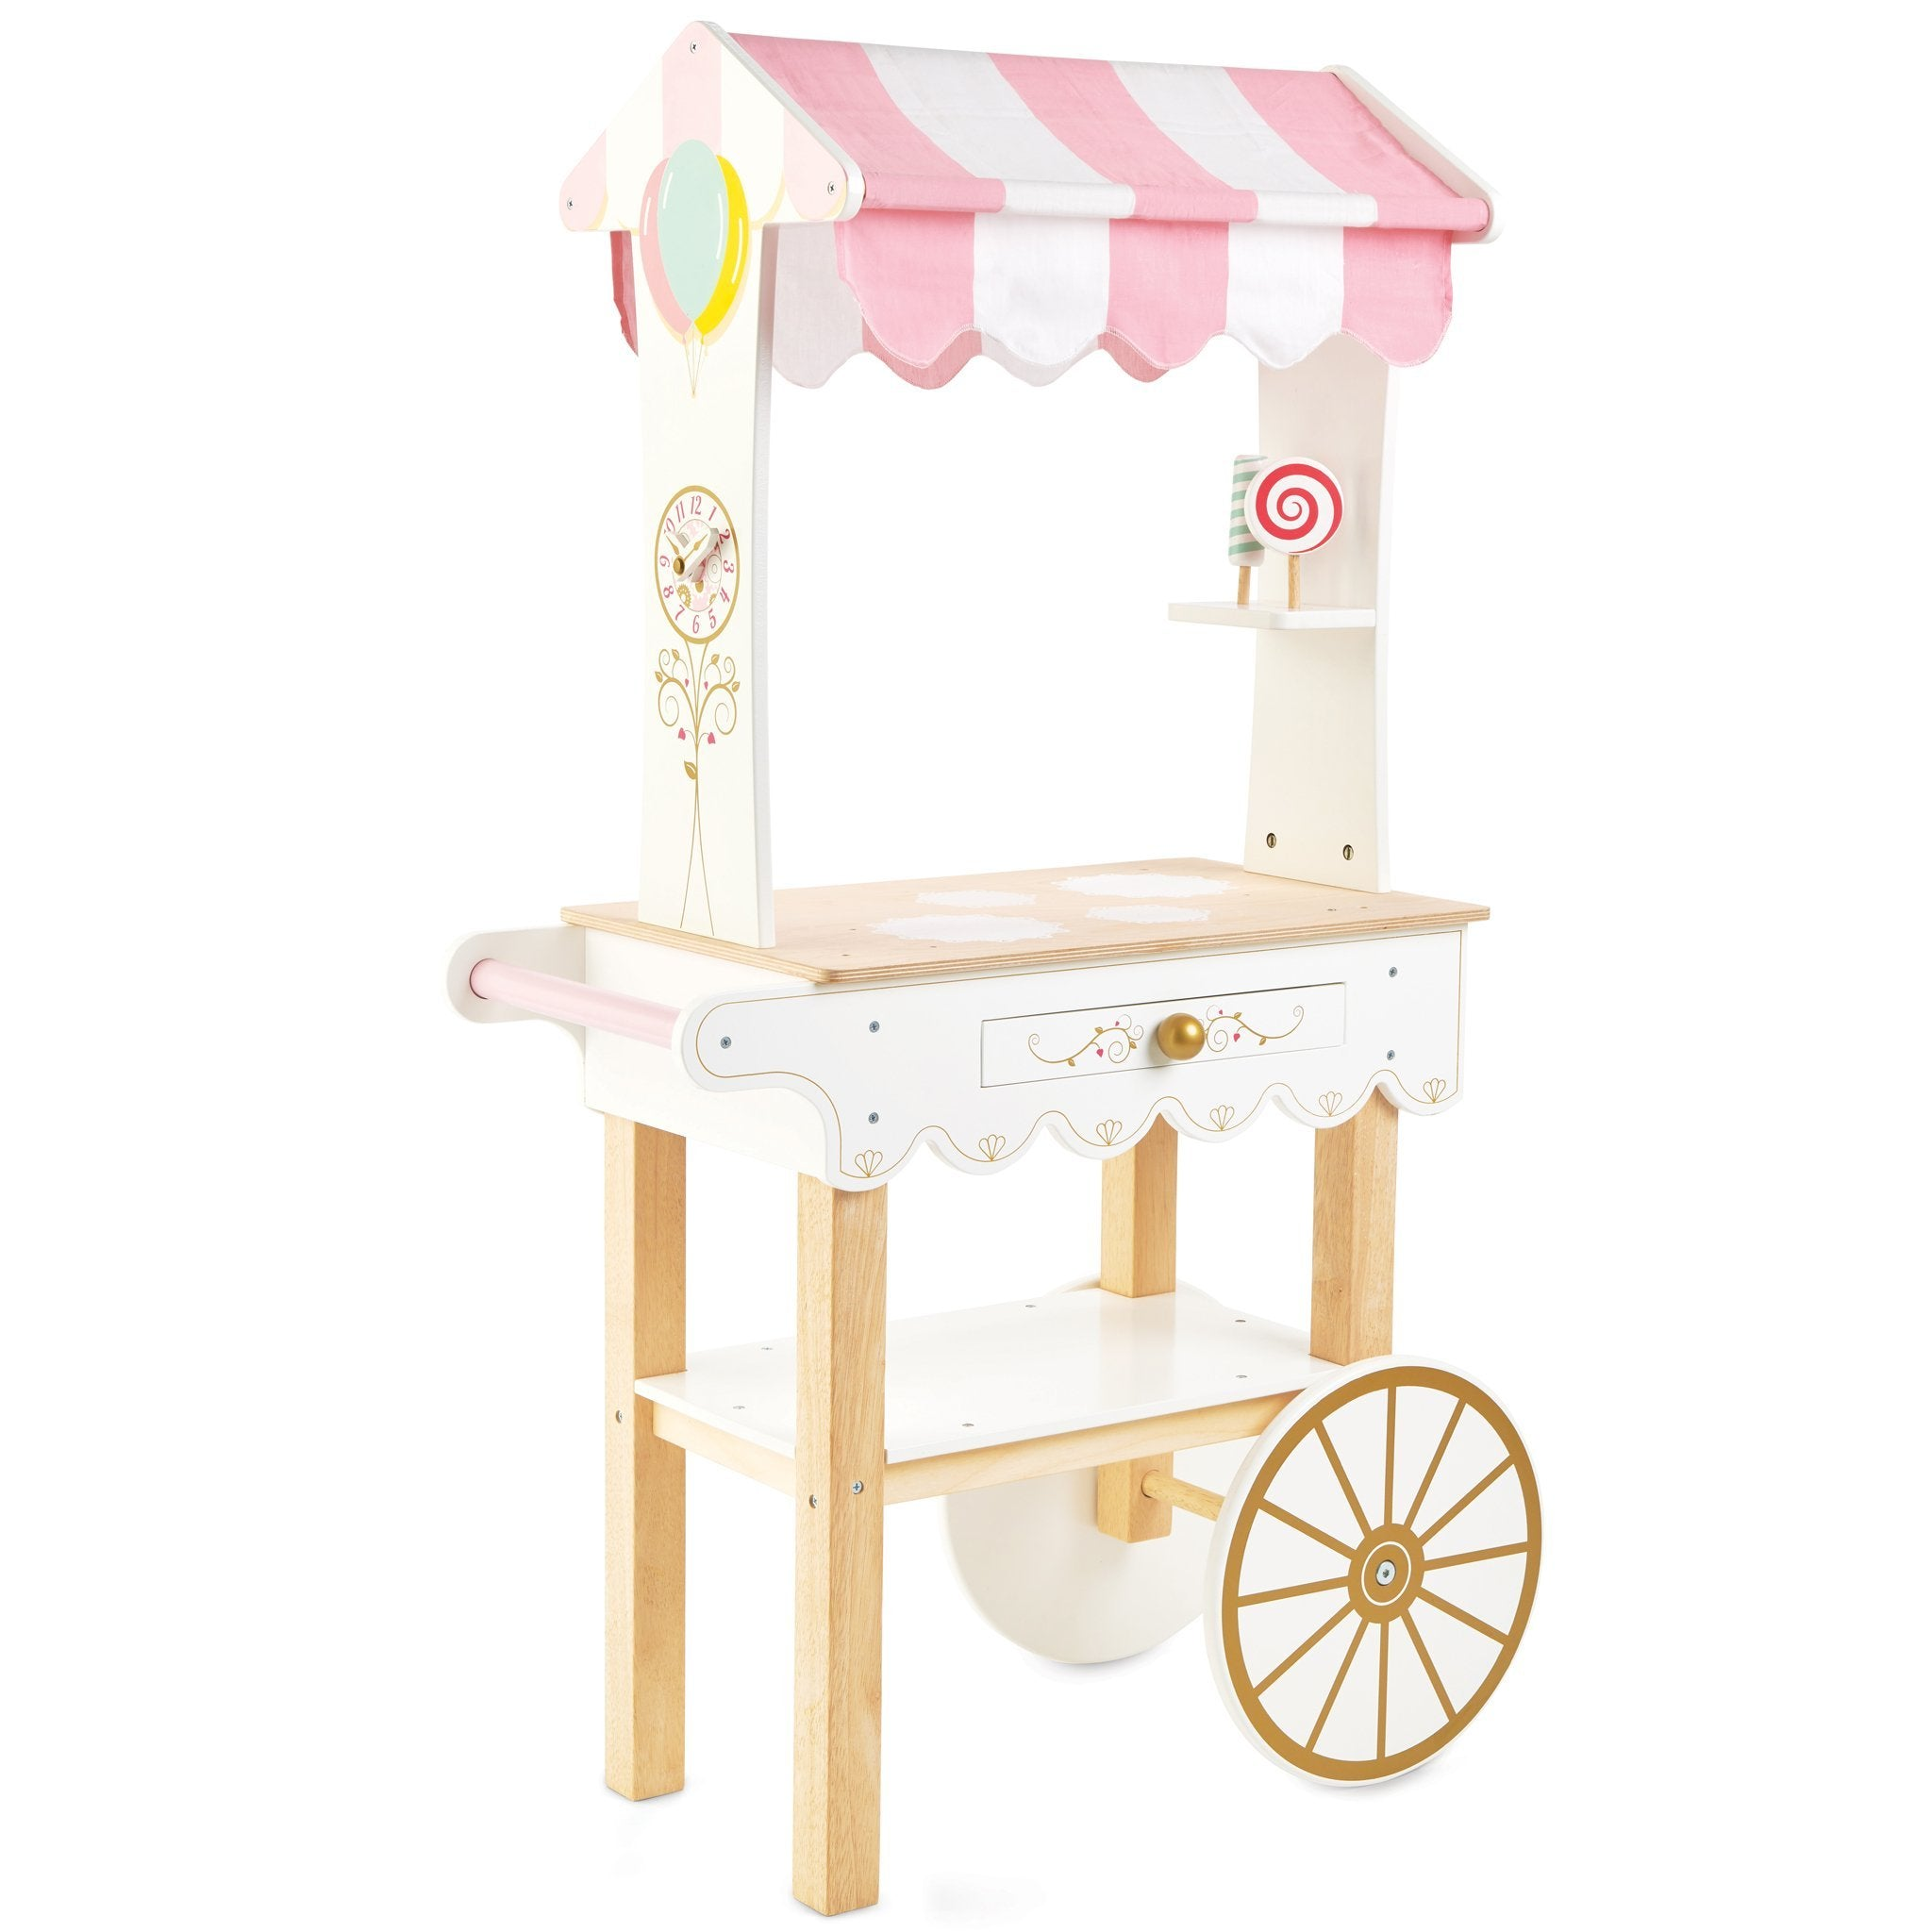 Le Toy Van Tea Time Trolley Le Toy Van General at Little Earth Nest Eco Shop